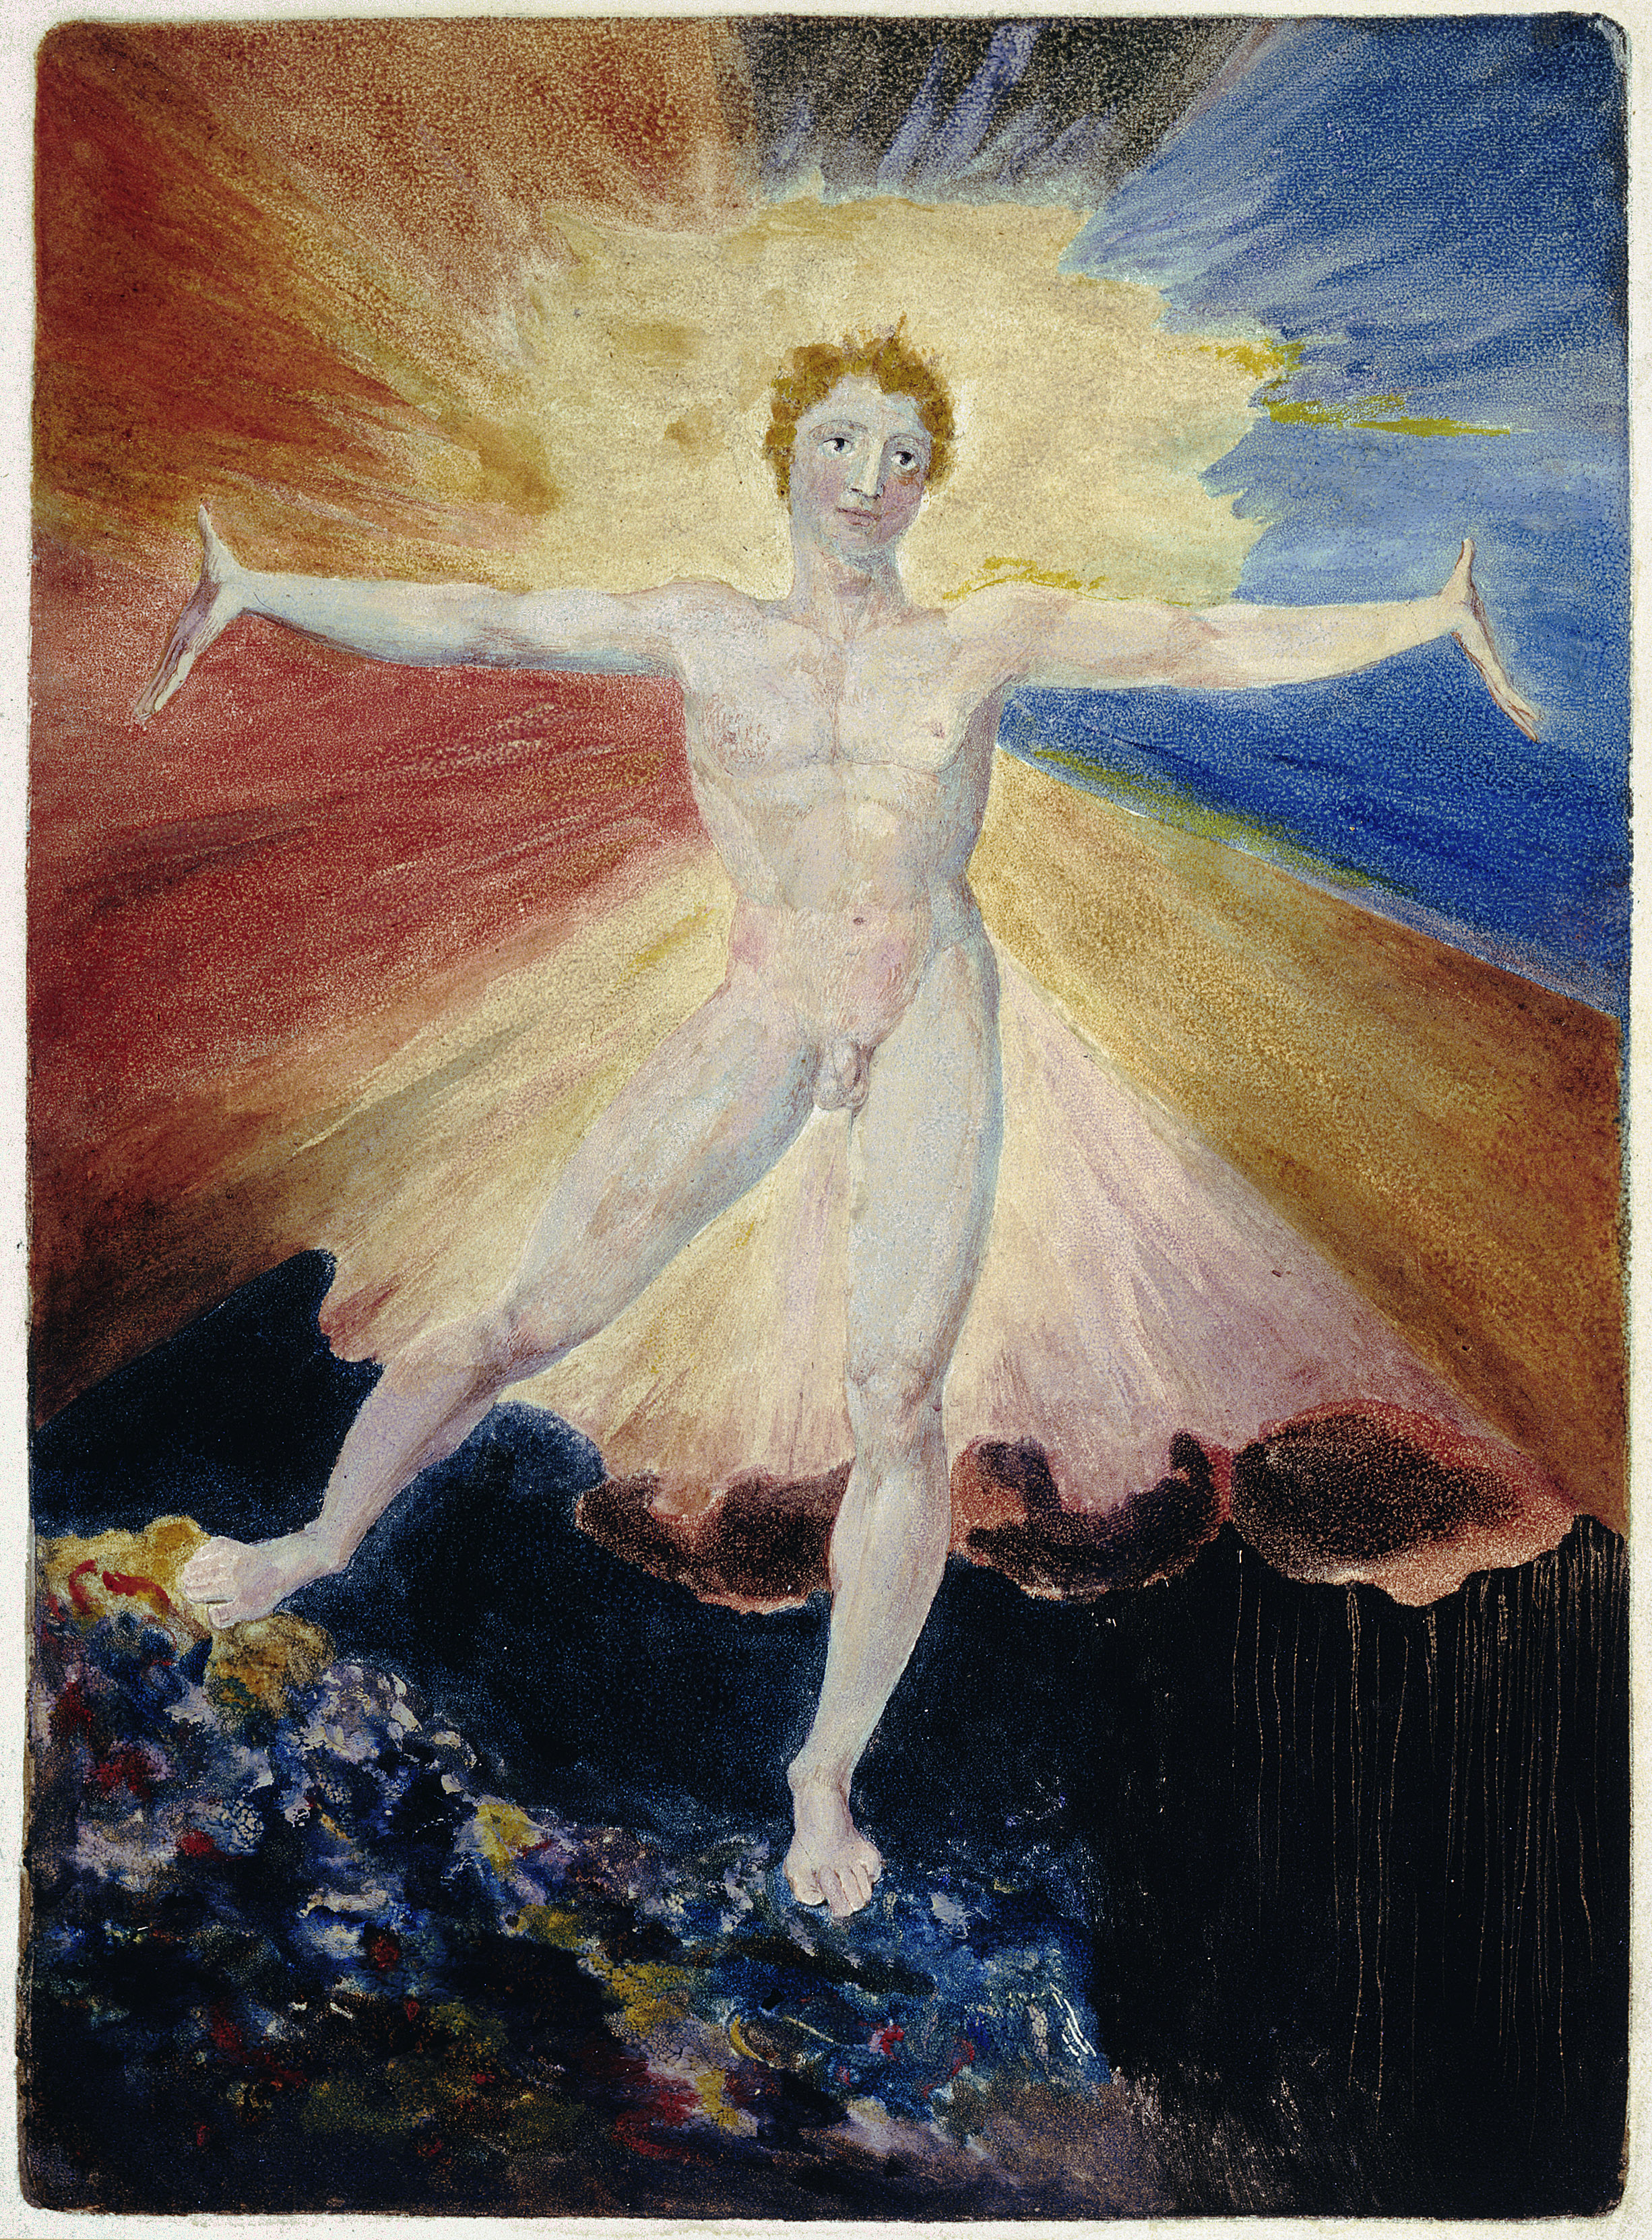 Albion Rose, William Blake, 1793-1796